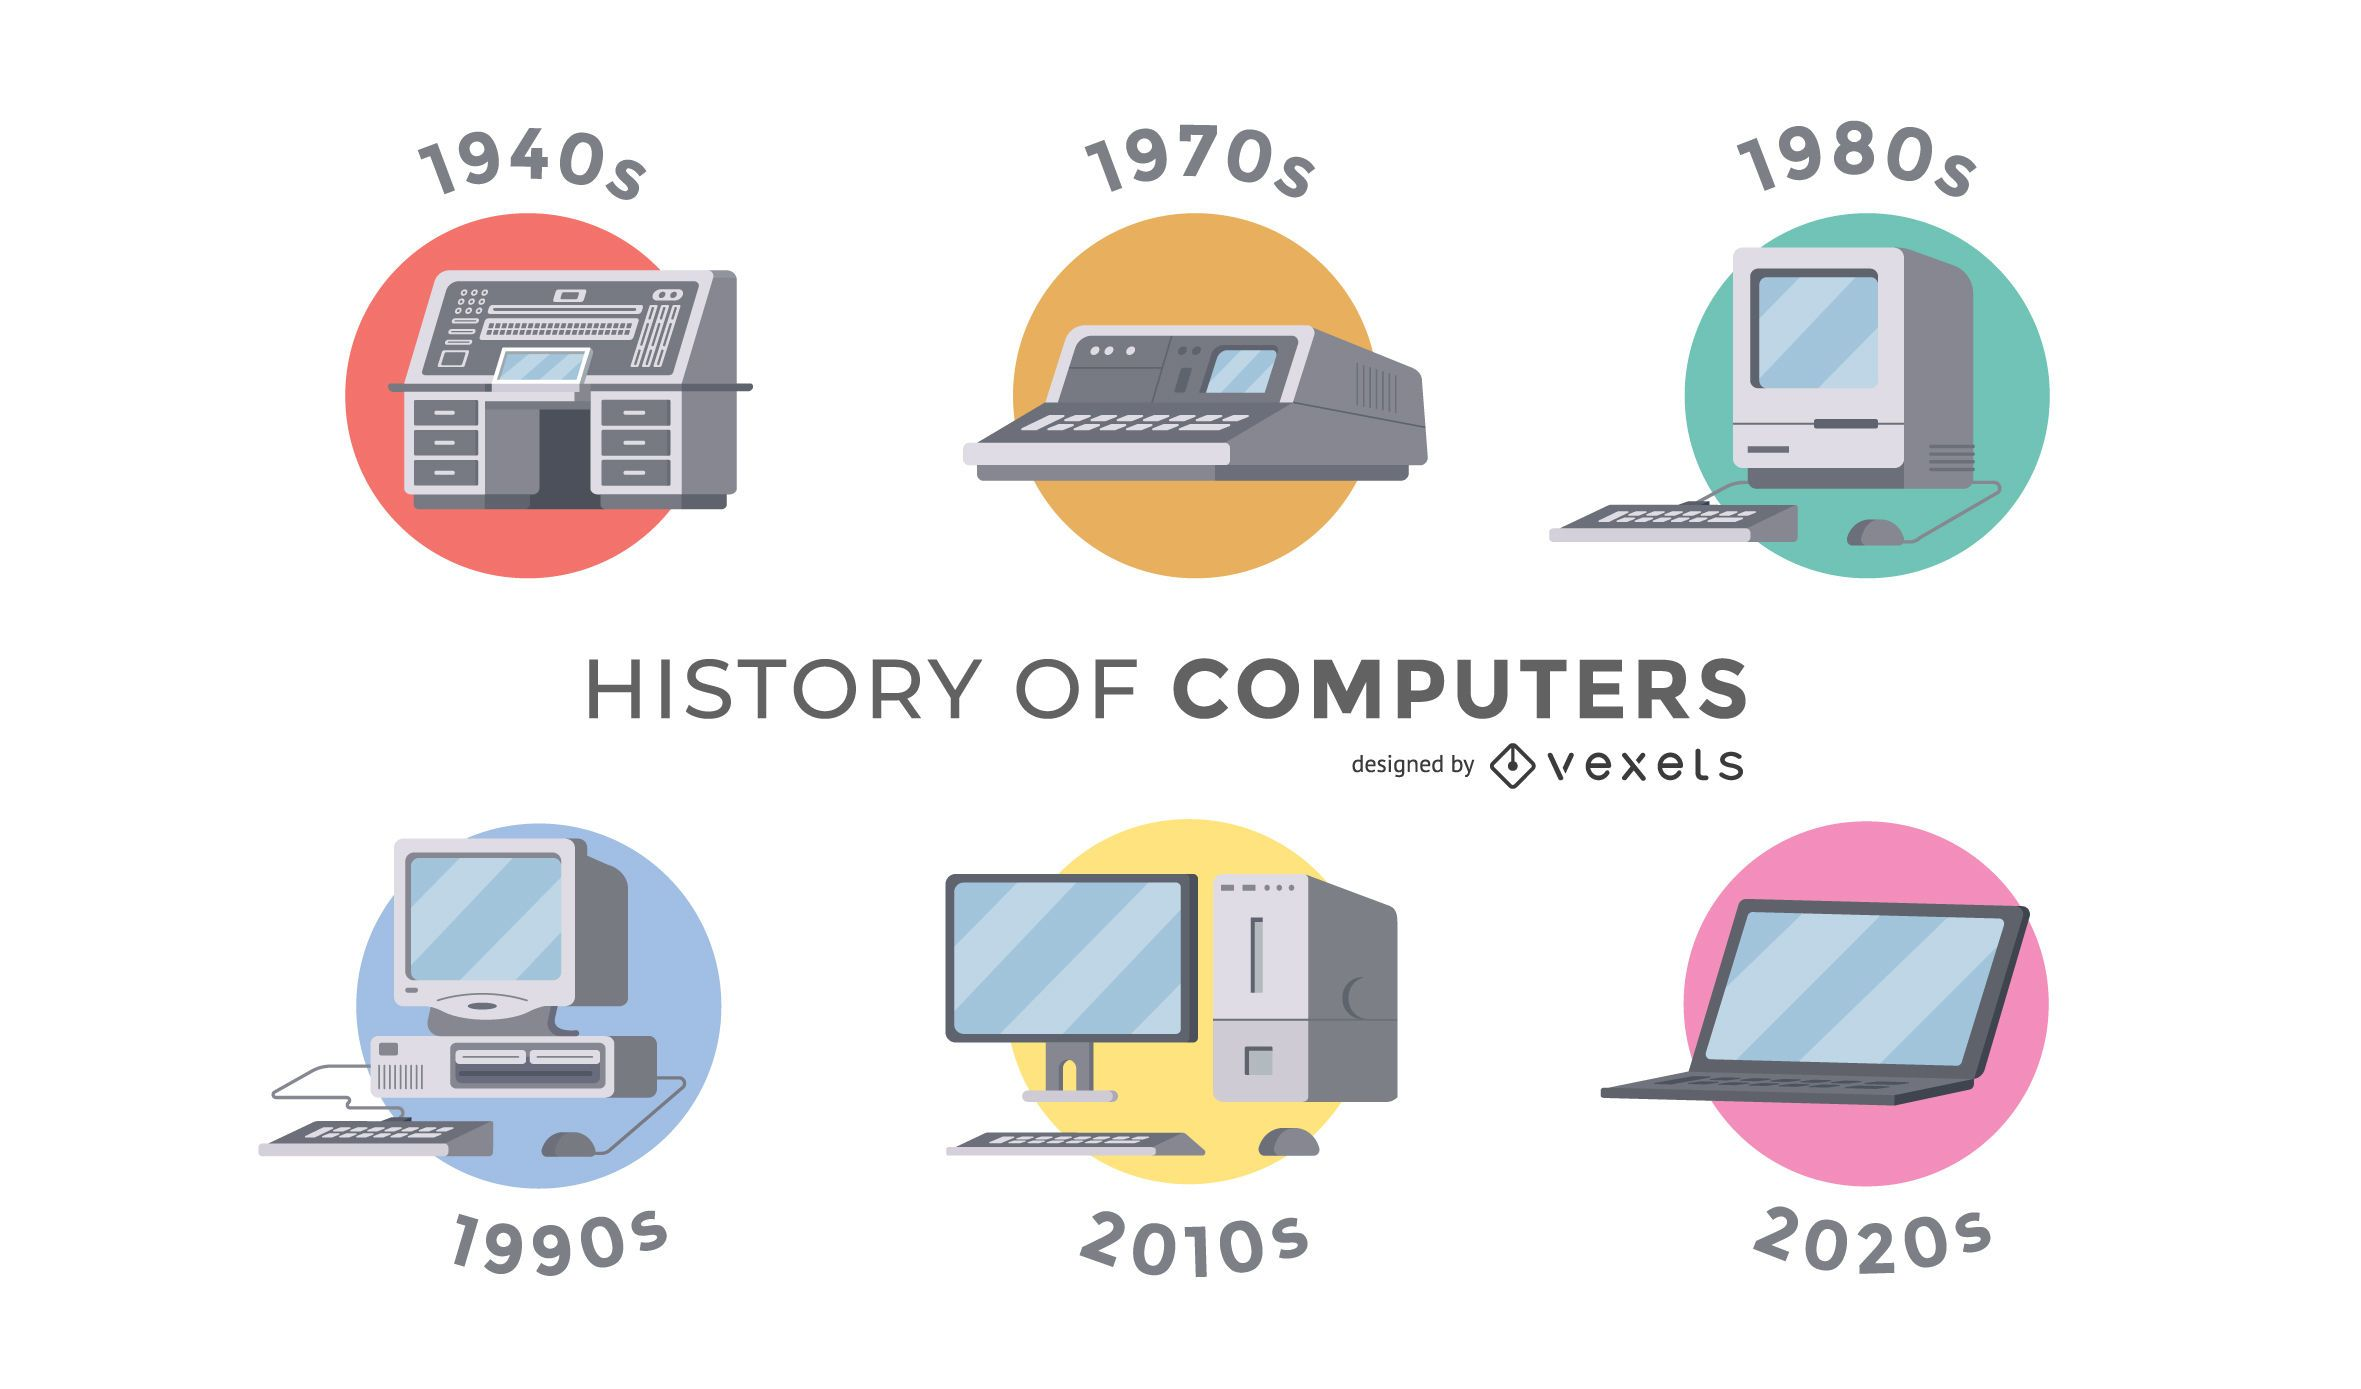 History of computers timeline design